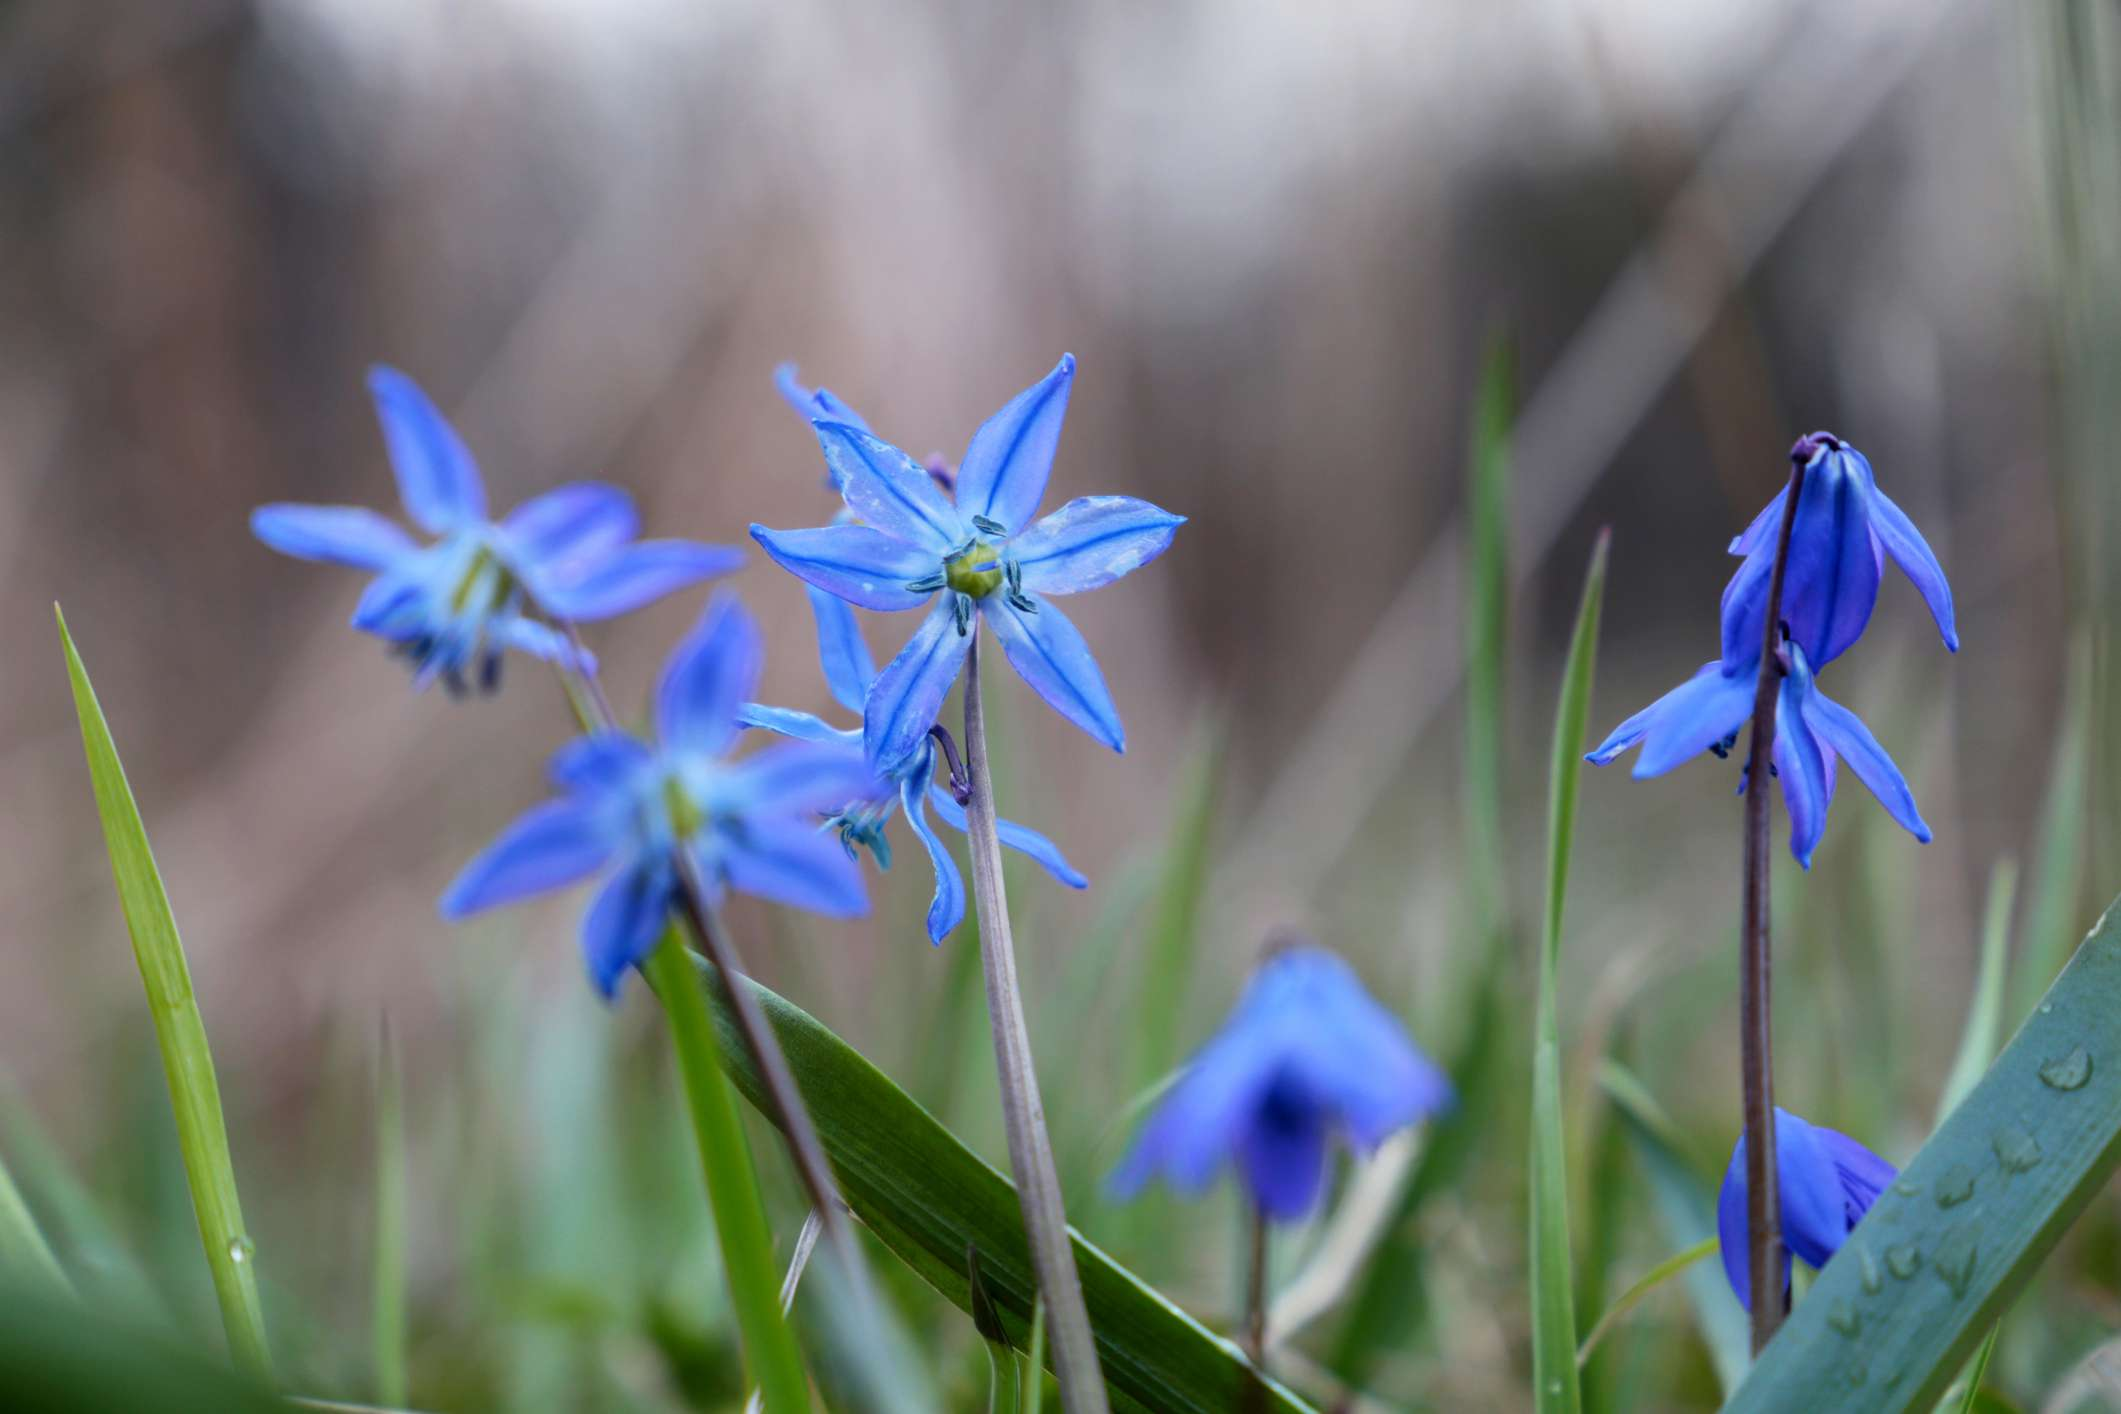 Scilla flowers opening after a spring rain